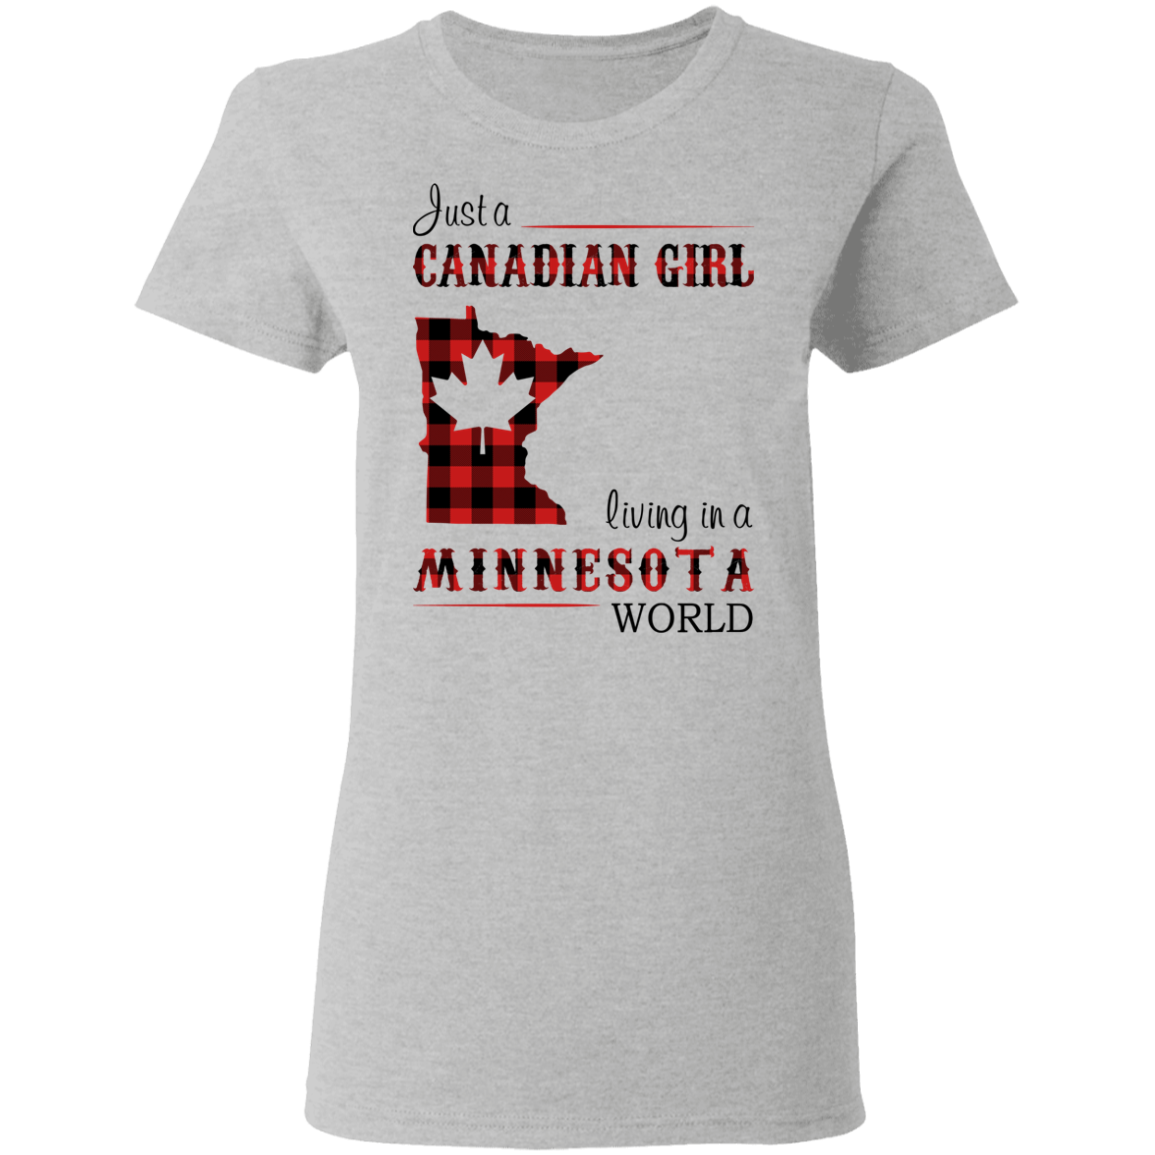 JUST A CANADIAN GIRL LIVING IN A MINNESOTA WORLD